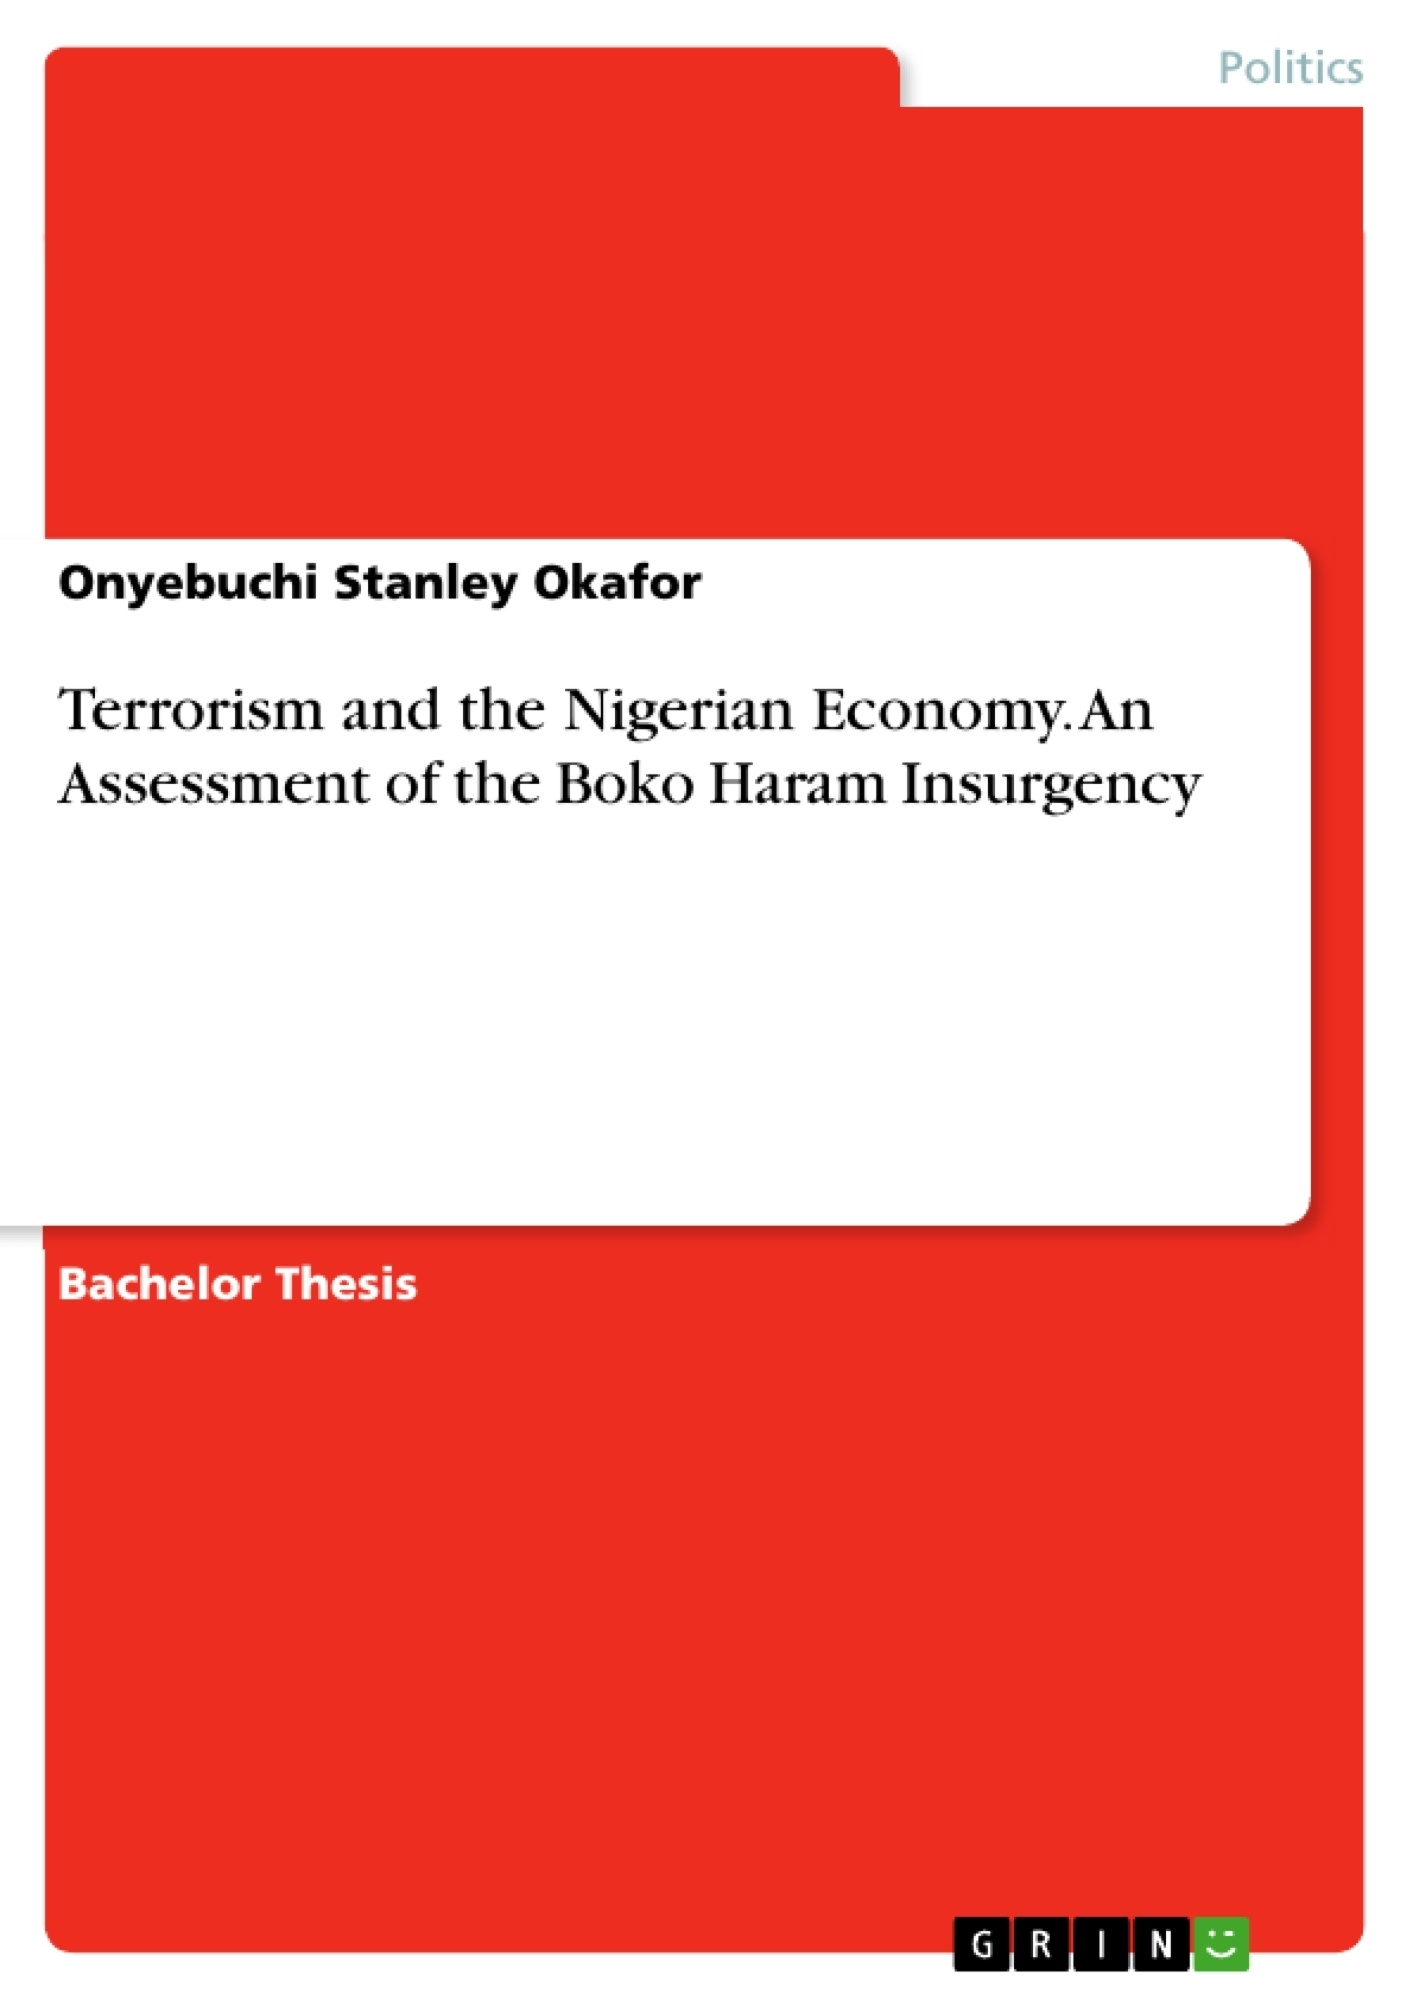 Title: Terrorism and the Nigerian Economy. An Assessment of the Boko Haram Insurgency